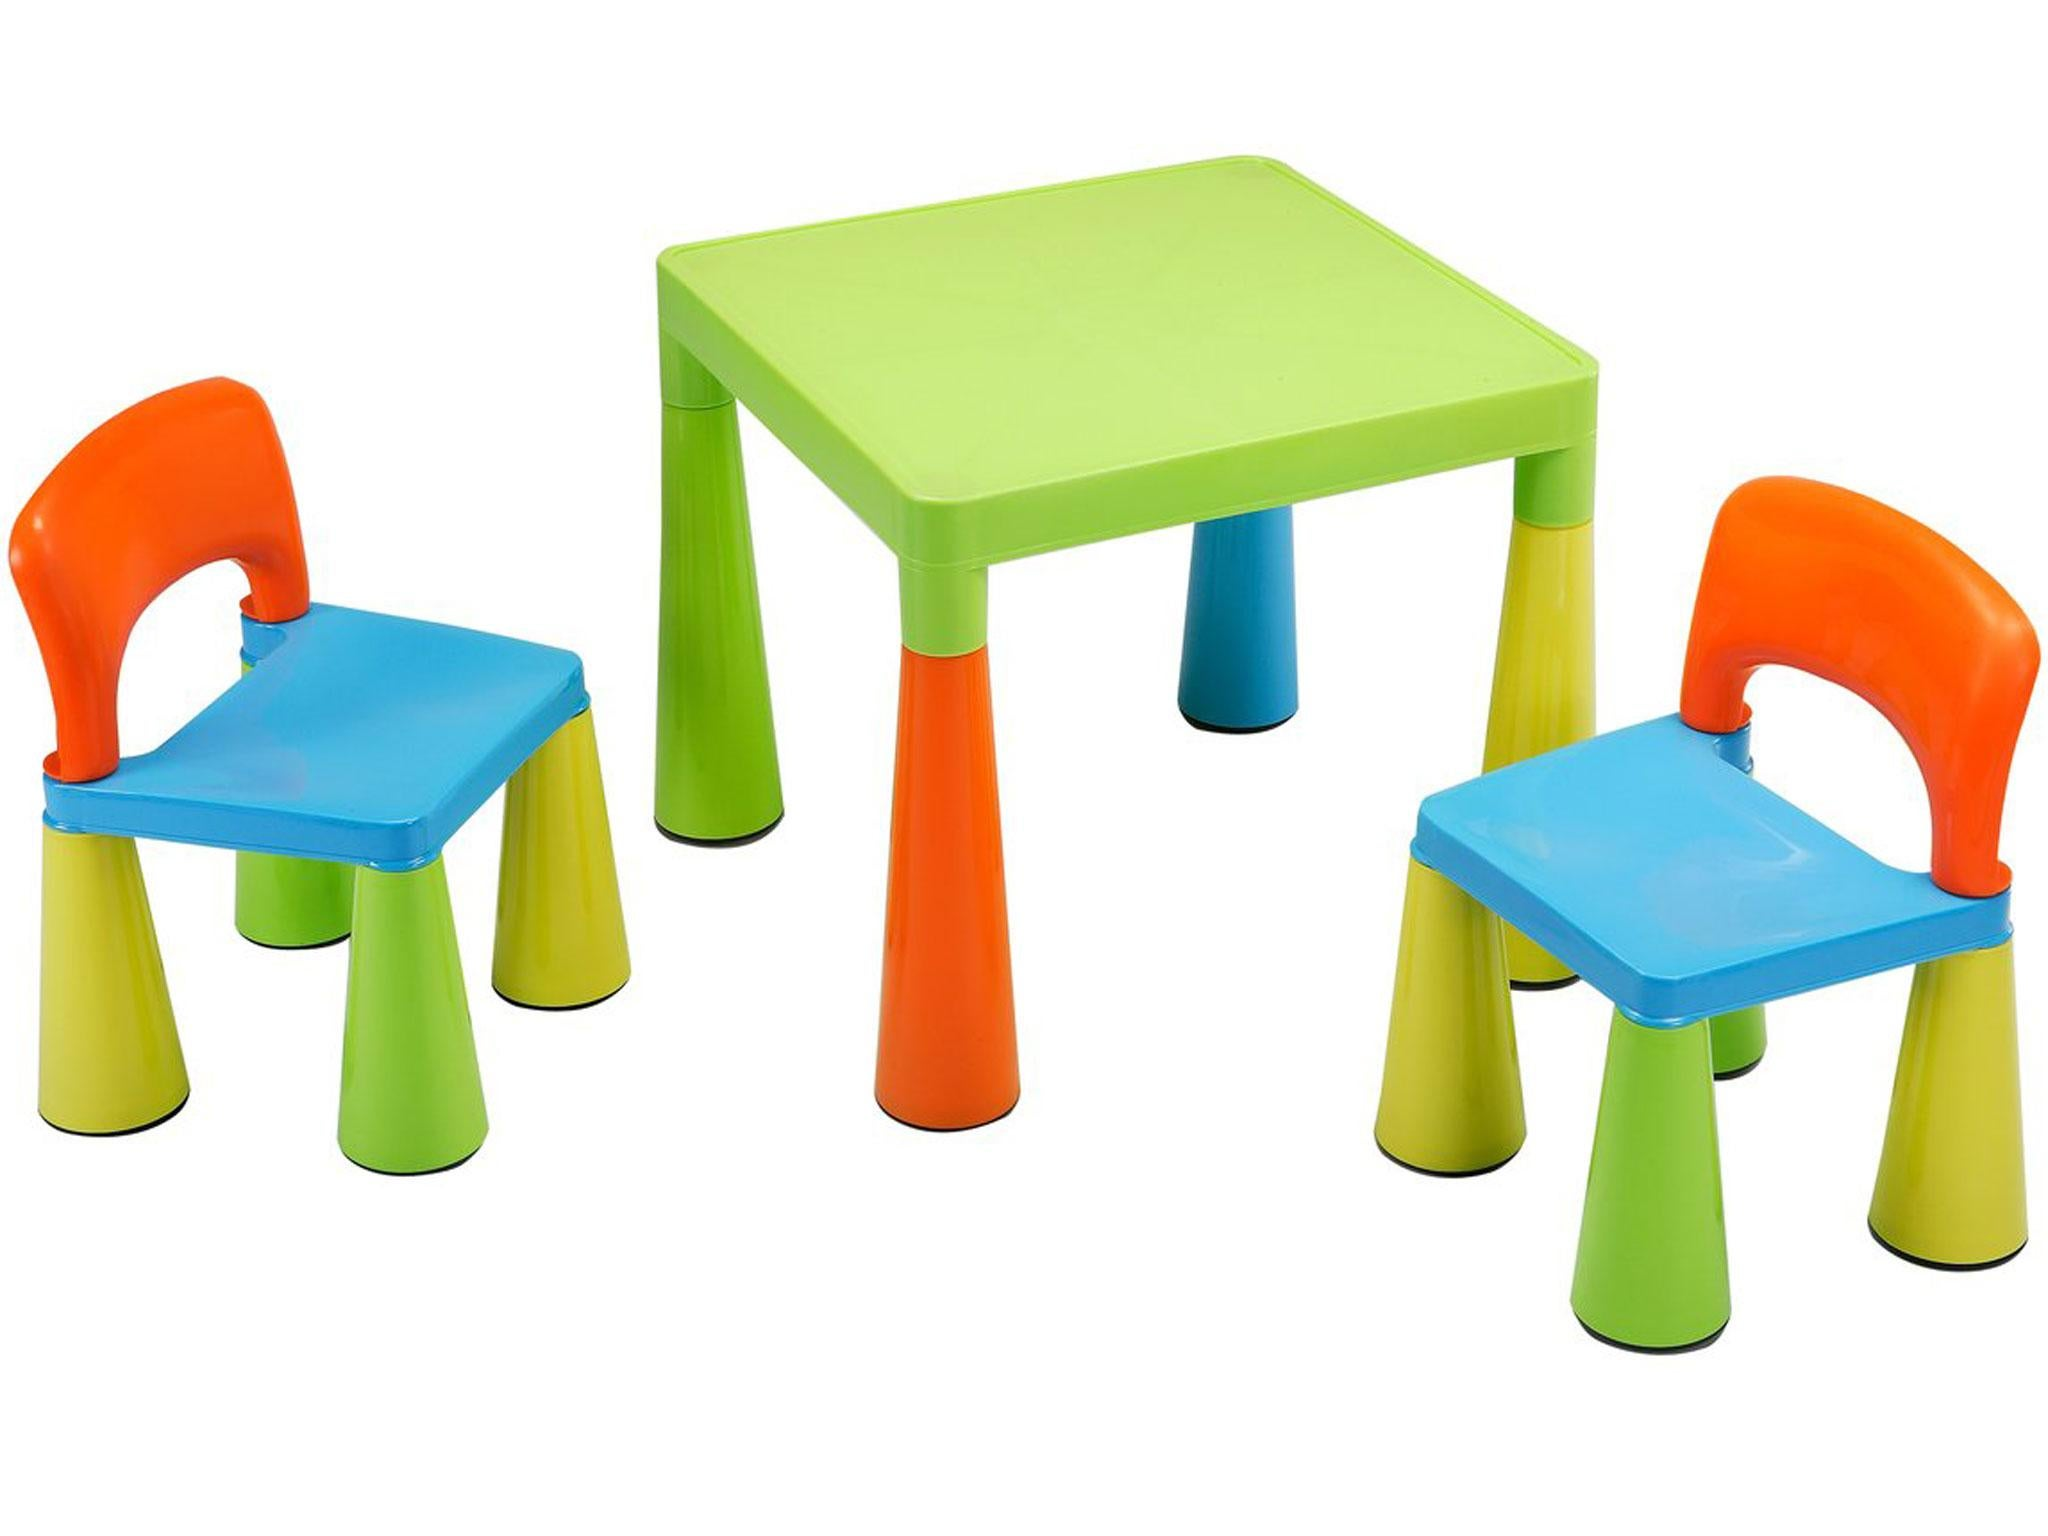 Best Kids Tables And Chairs The Independent - Wayfair kids table and chairs